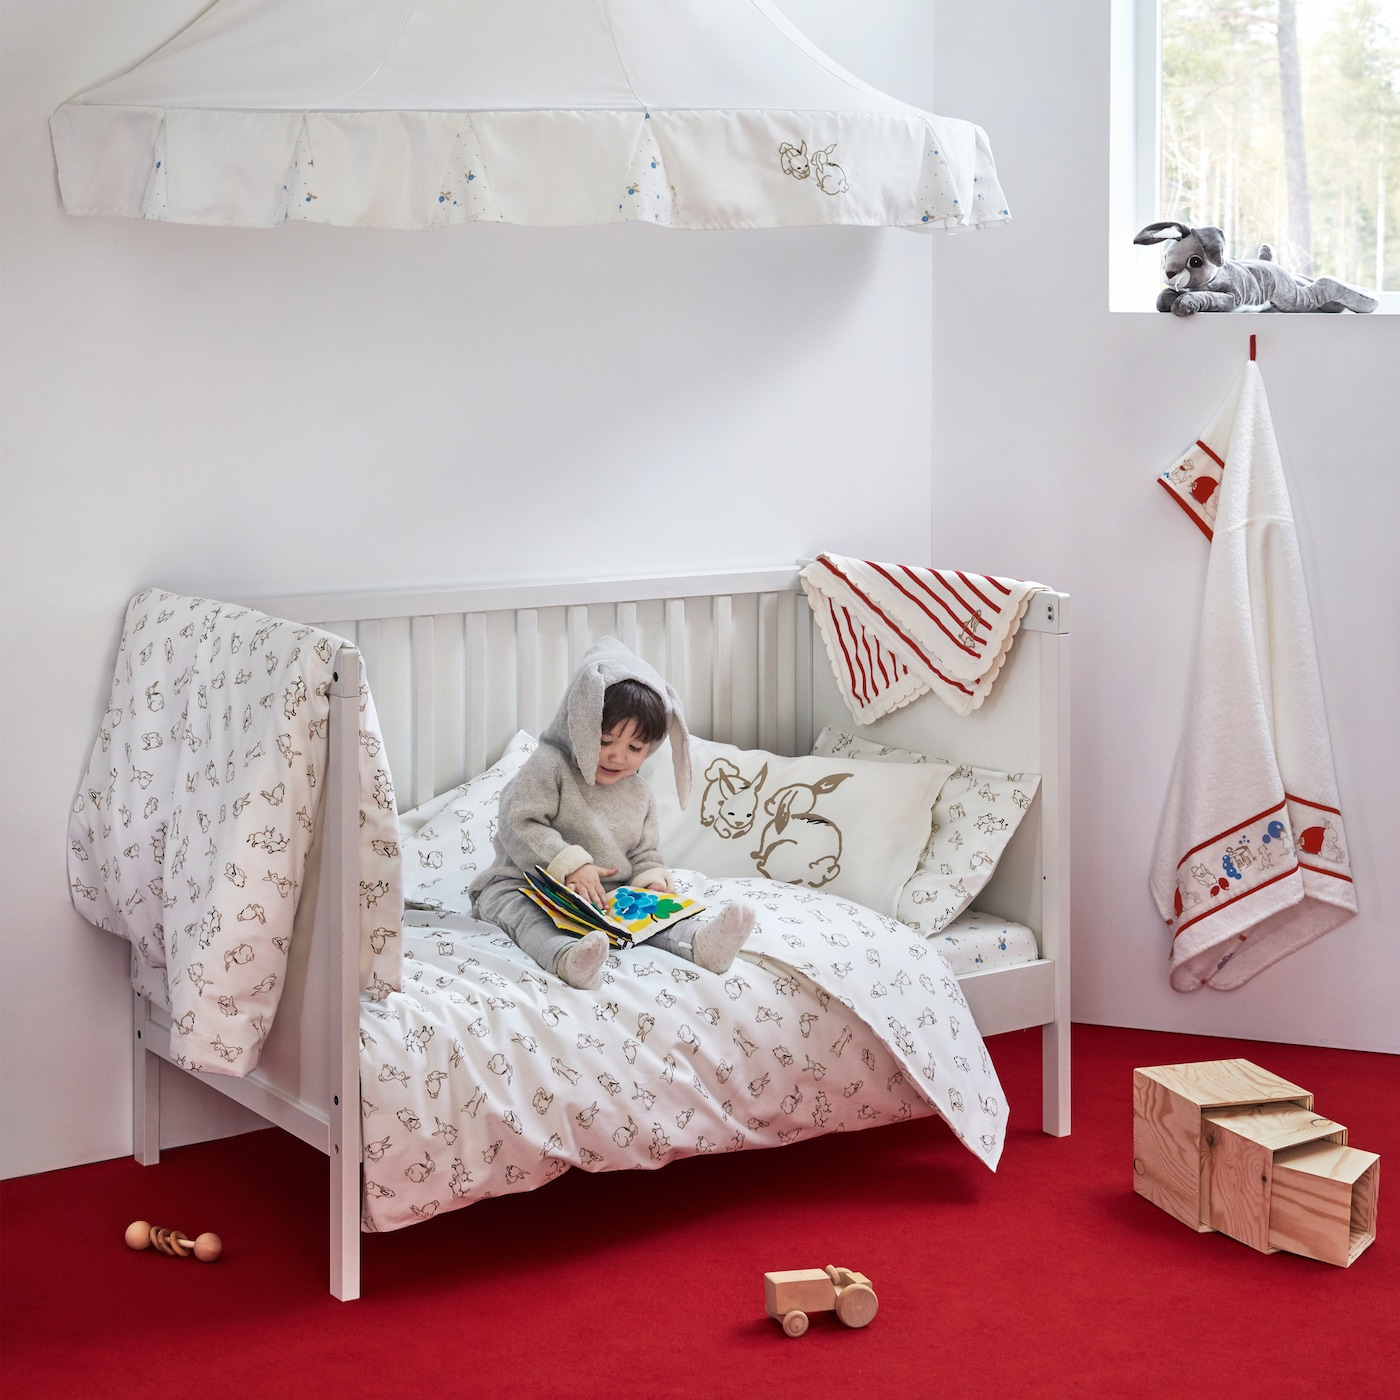 RÖDHAKE baby textile collection with a friendly pattern found on the quilt covers, a blanket, bed canopy and more.